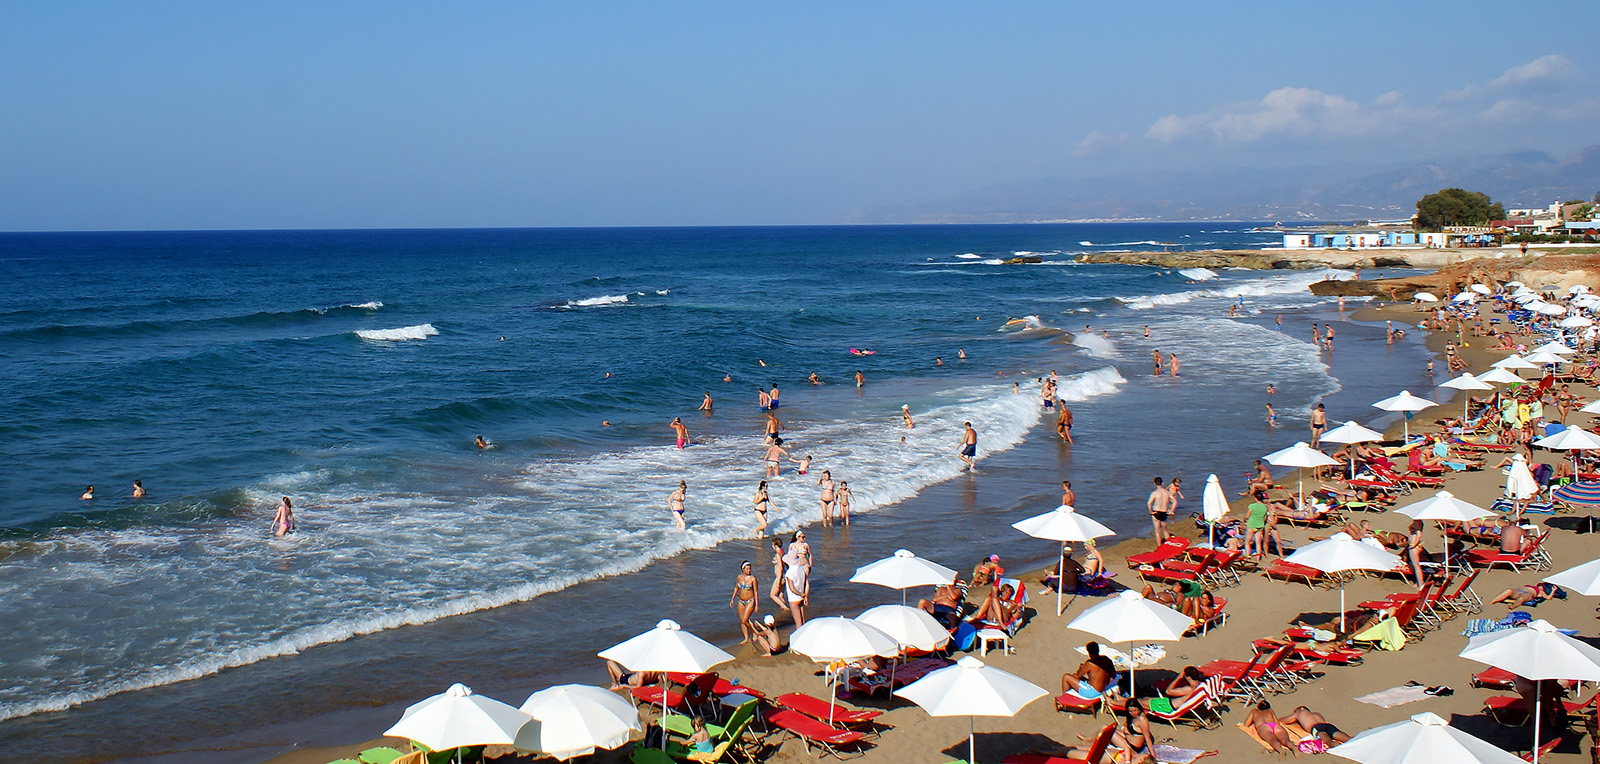 Voucher Codes For Holidays On The Beach